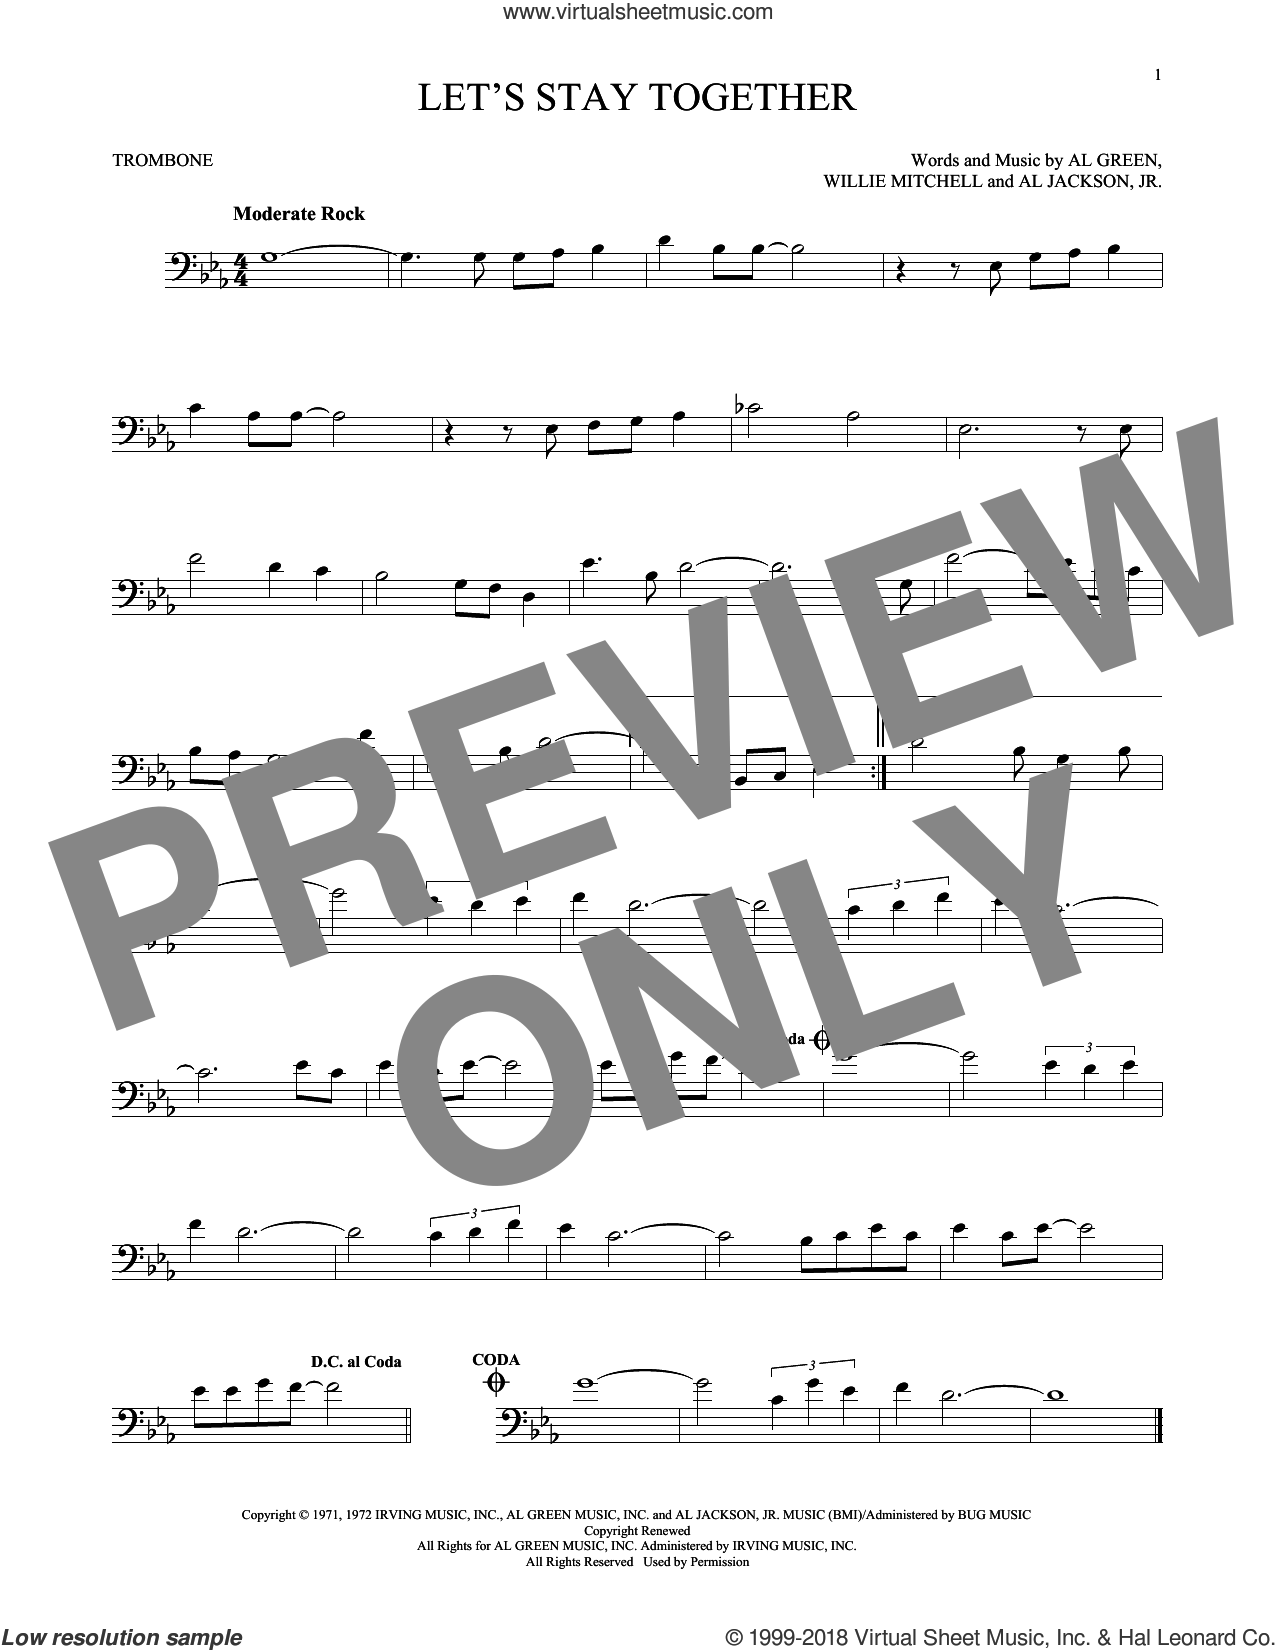 Let's Stay Together sheet music for trombone solo by Al Green, Al Jackson, Jr. and Willie Mitchell, intermediate skill level